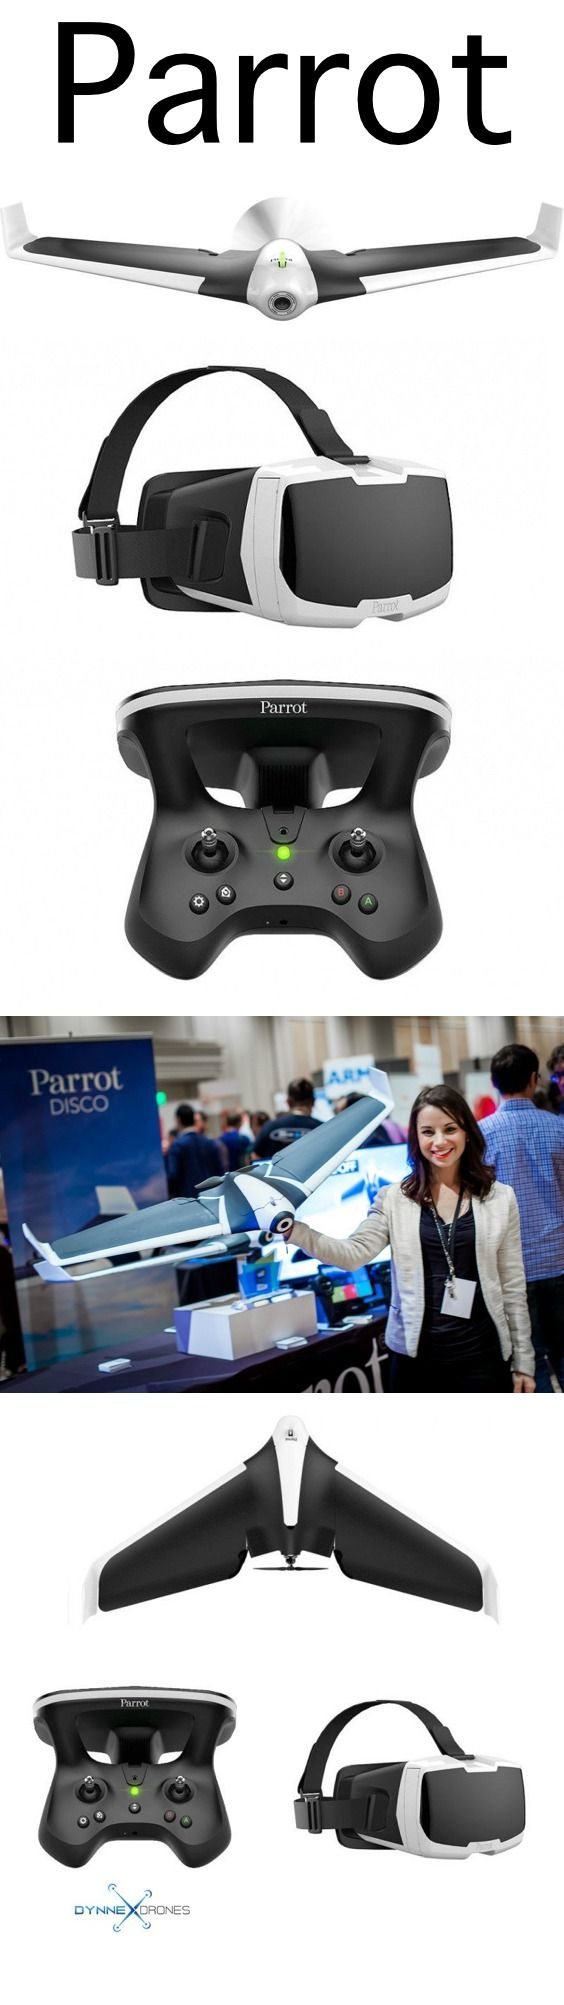 This Parrot Disco is super fun to fly and easy for any level flyer! Drones are AWESOME! Put your Parrot Disco into flight today! Start taking epic footage with your new Parrot Disco. We make it easy with BUY NOW PAY LATER finance option as low as 25$ per month. Now what are you waiting for. https://www.dynnexdrones.com/